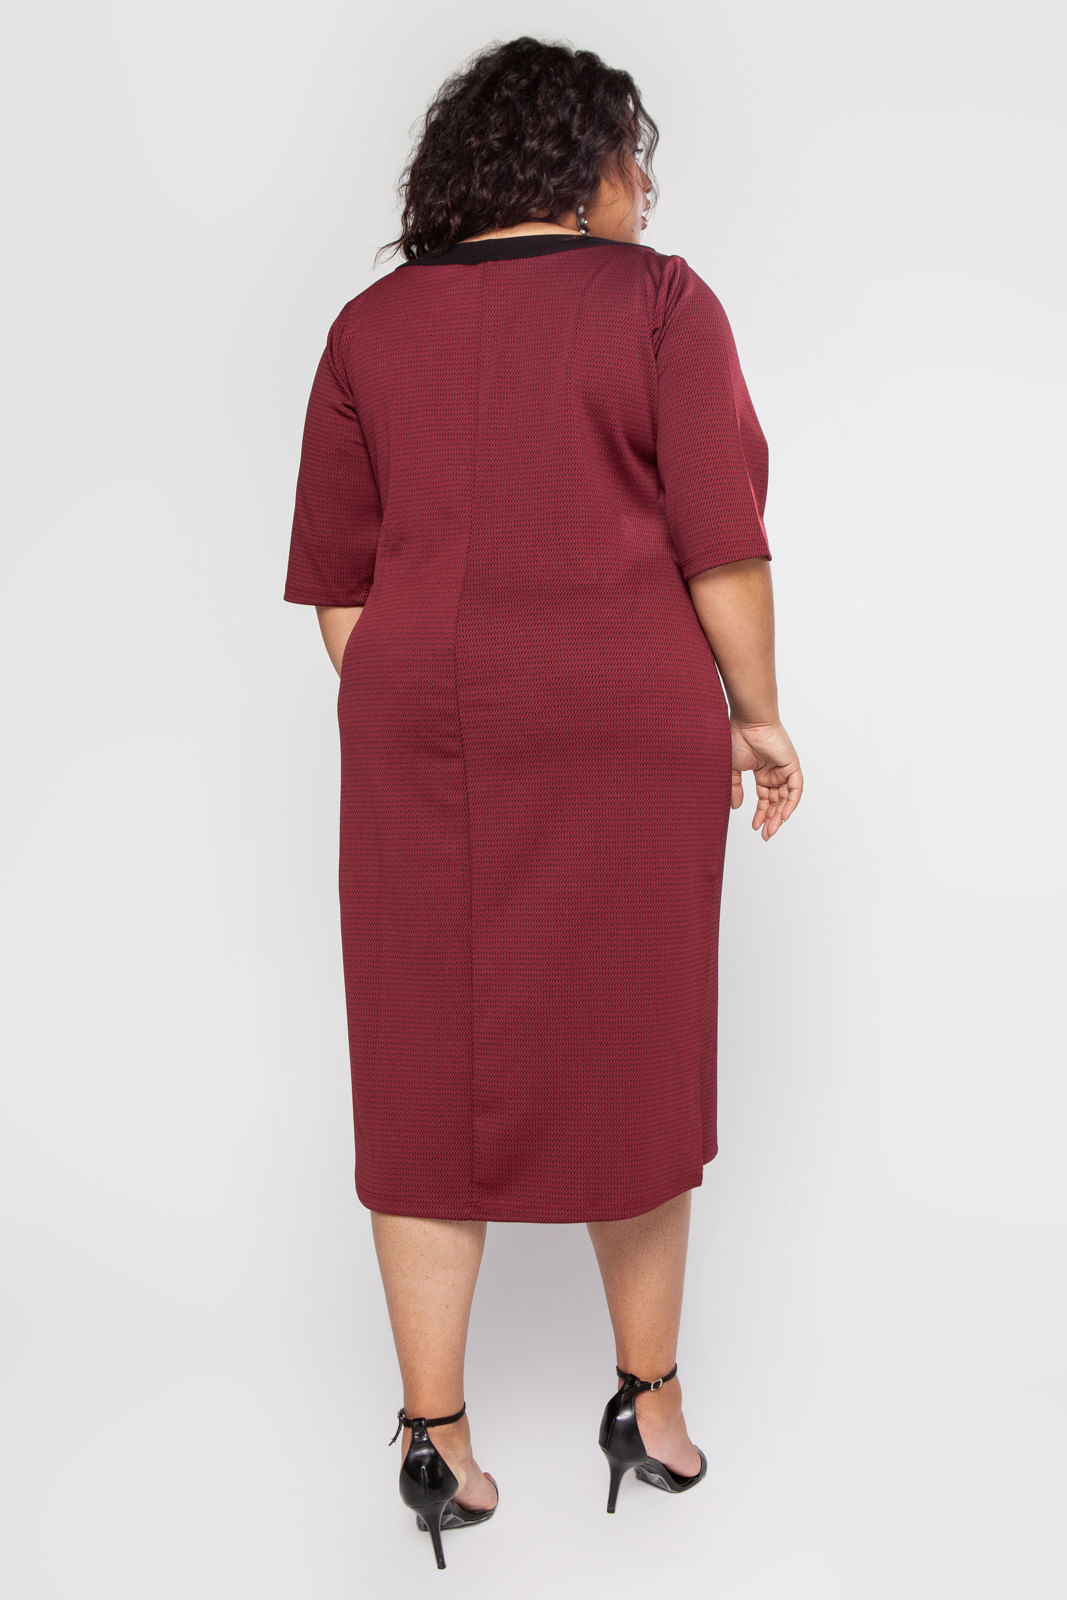 GRG57301_Vestido_Plus_Size_Midi_Bordo_5